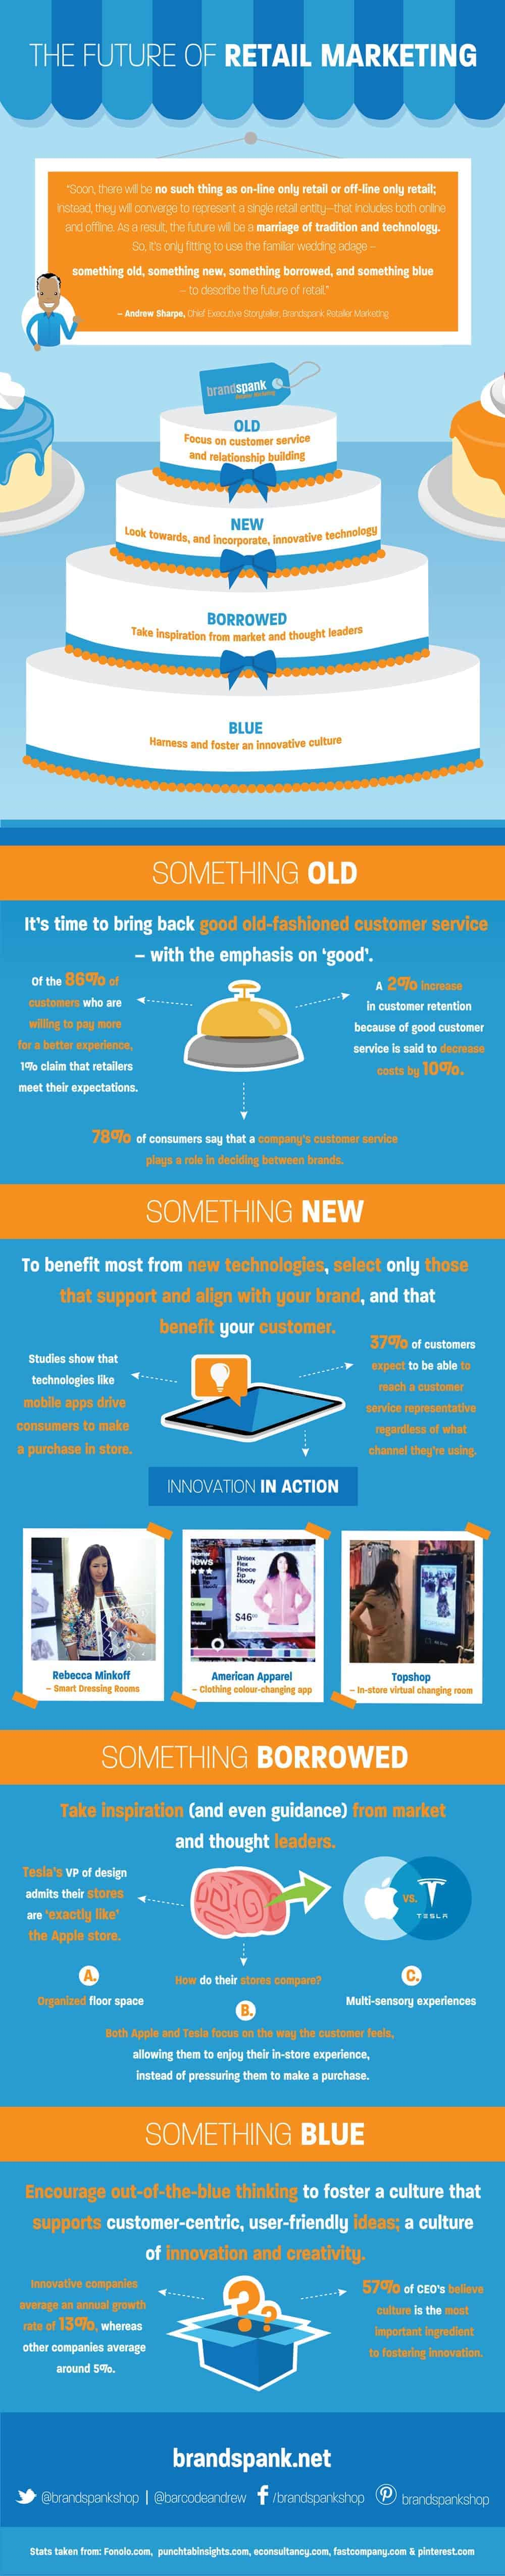 future of retail marketing infographic